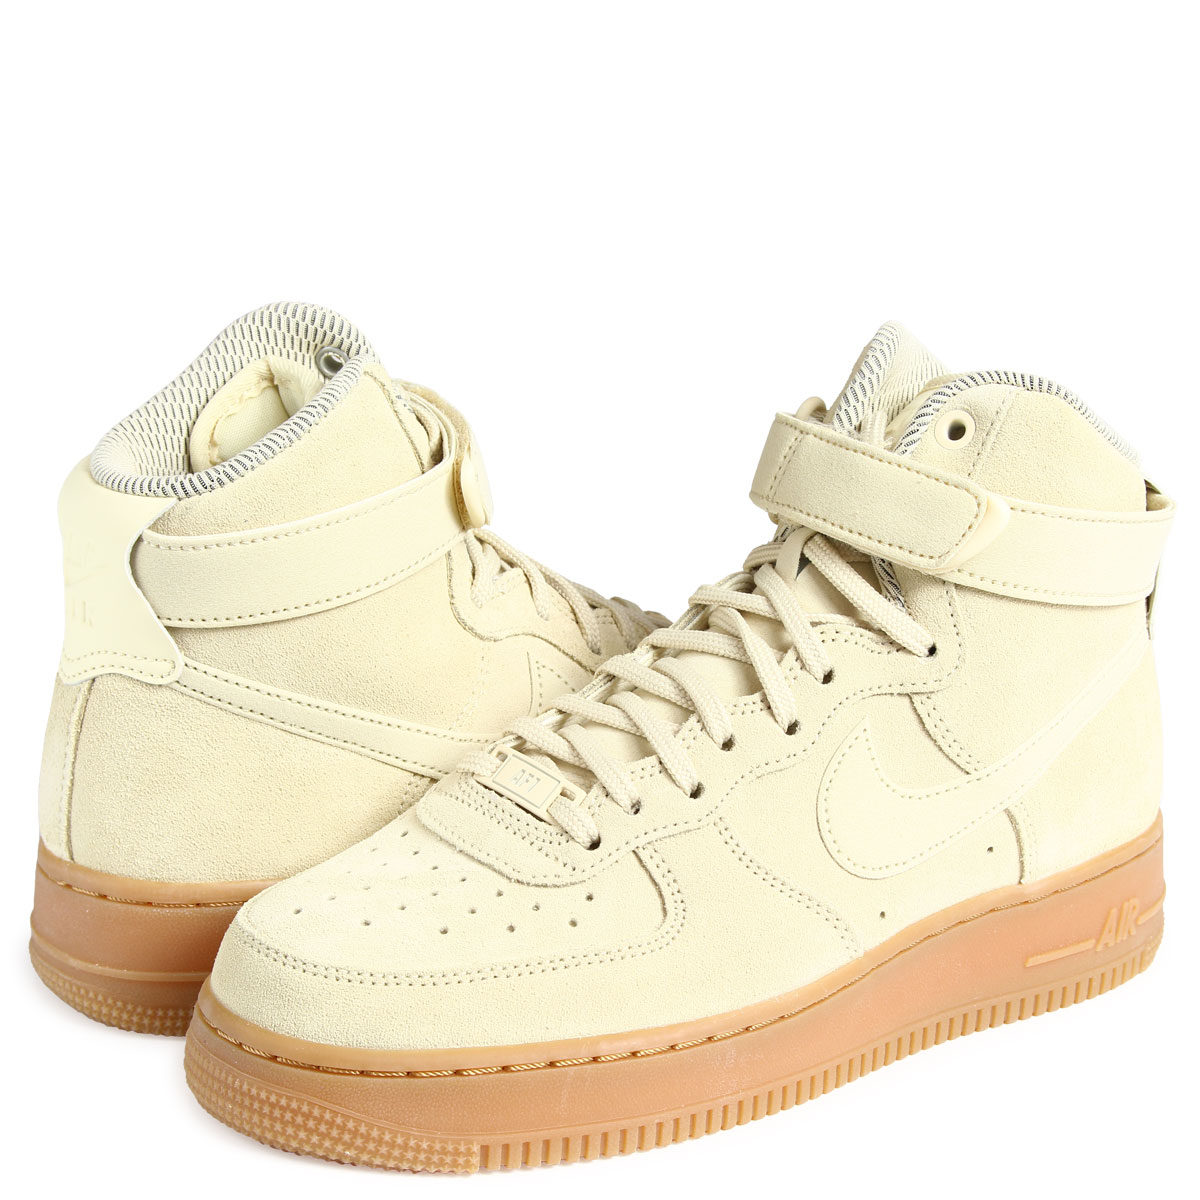 Nike WMNS Air Force 1 High SE Ivory 860544 100 | SneakerFiles